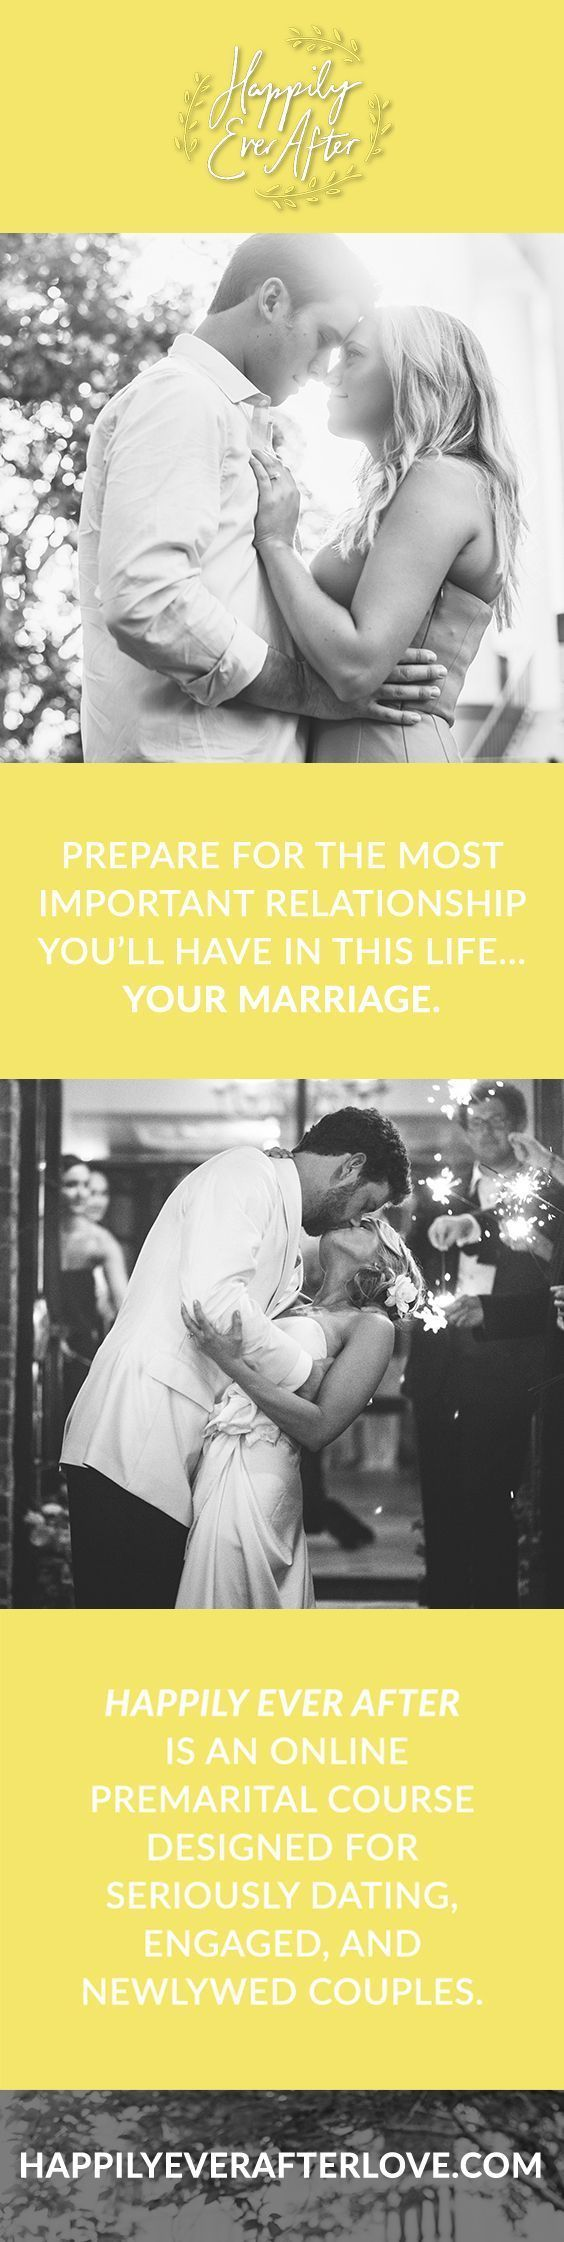 HAPPILY EVER AFTER is an online premarital course designed for seriously dating, engaged, and newlywed couples covering topics like money, intimacy, communications, conflict & more! ⇨ www.happilyeverafterlove.com?utm_content=buffer0dc2a&utm_medium=social&utm_source=pinterest.com&utm_campaign=buffer